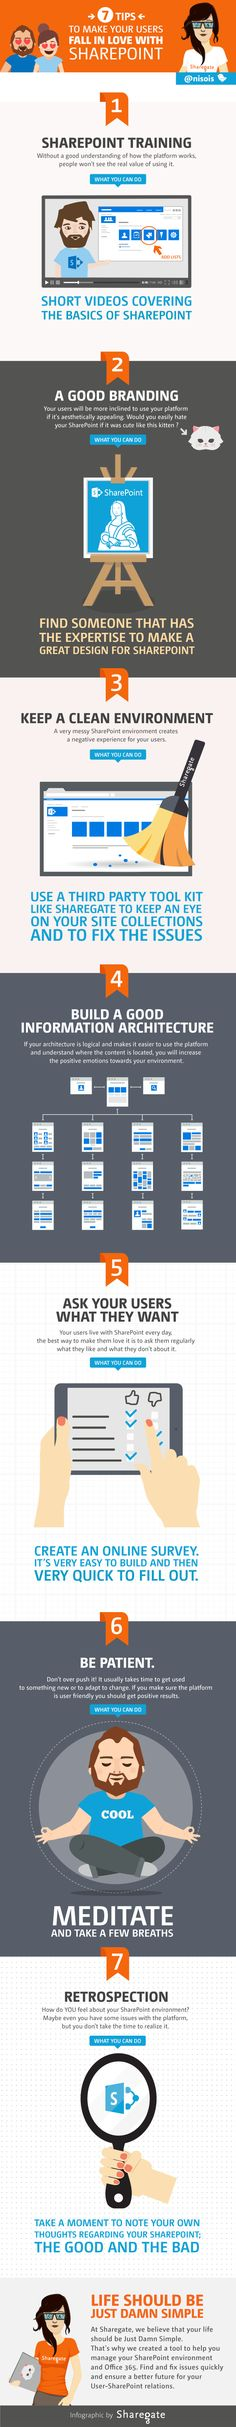 7 Ways to make your users addicted to SharePoint | Sharegate